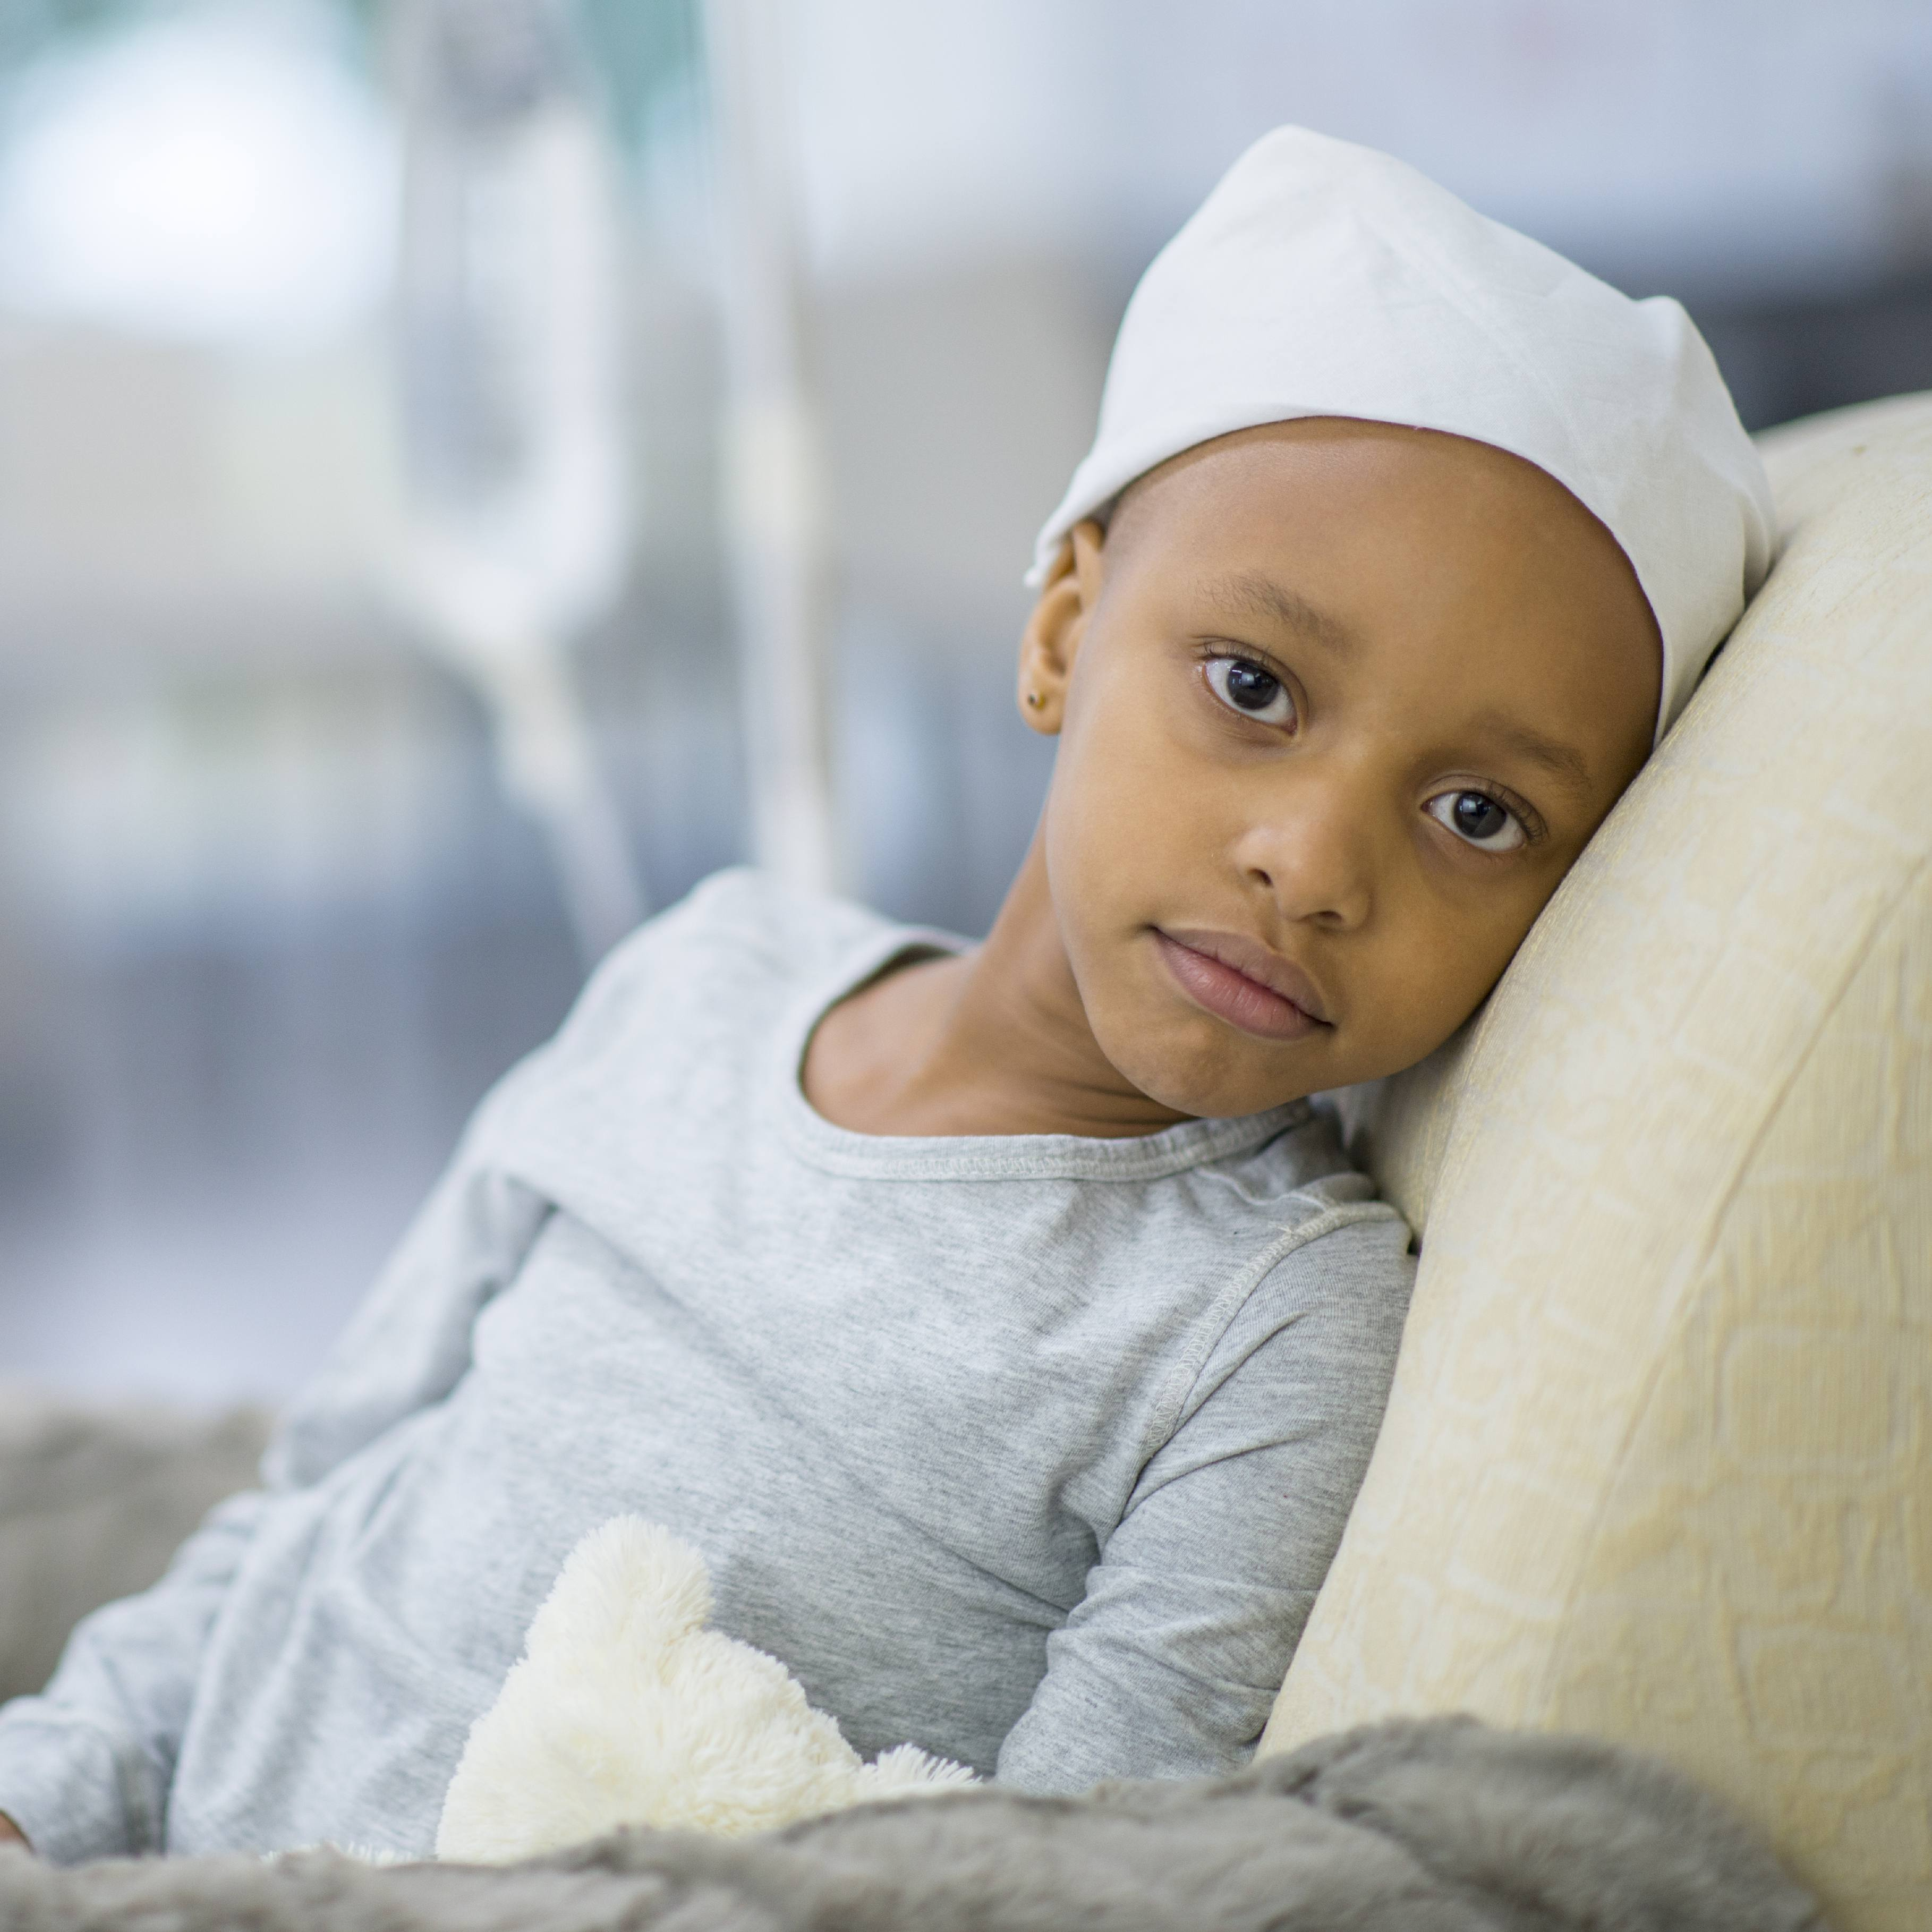 a young Black, maybe Asian, child in the hospital with an IV, perhaps sick with cancer